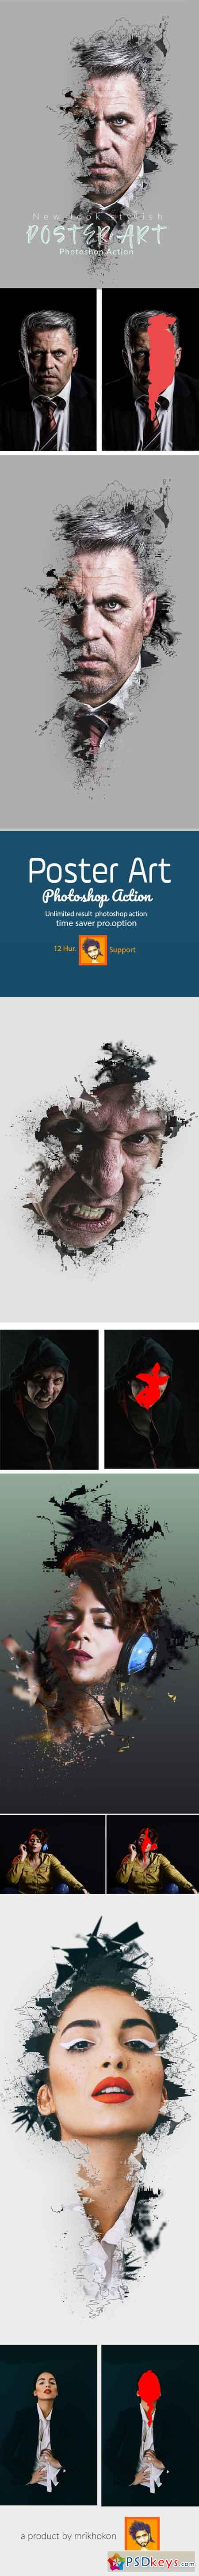 Poster Art Photoshop Action 23094765